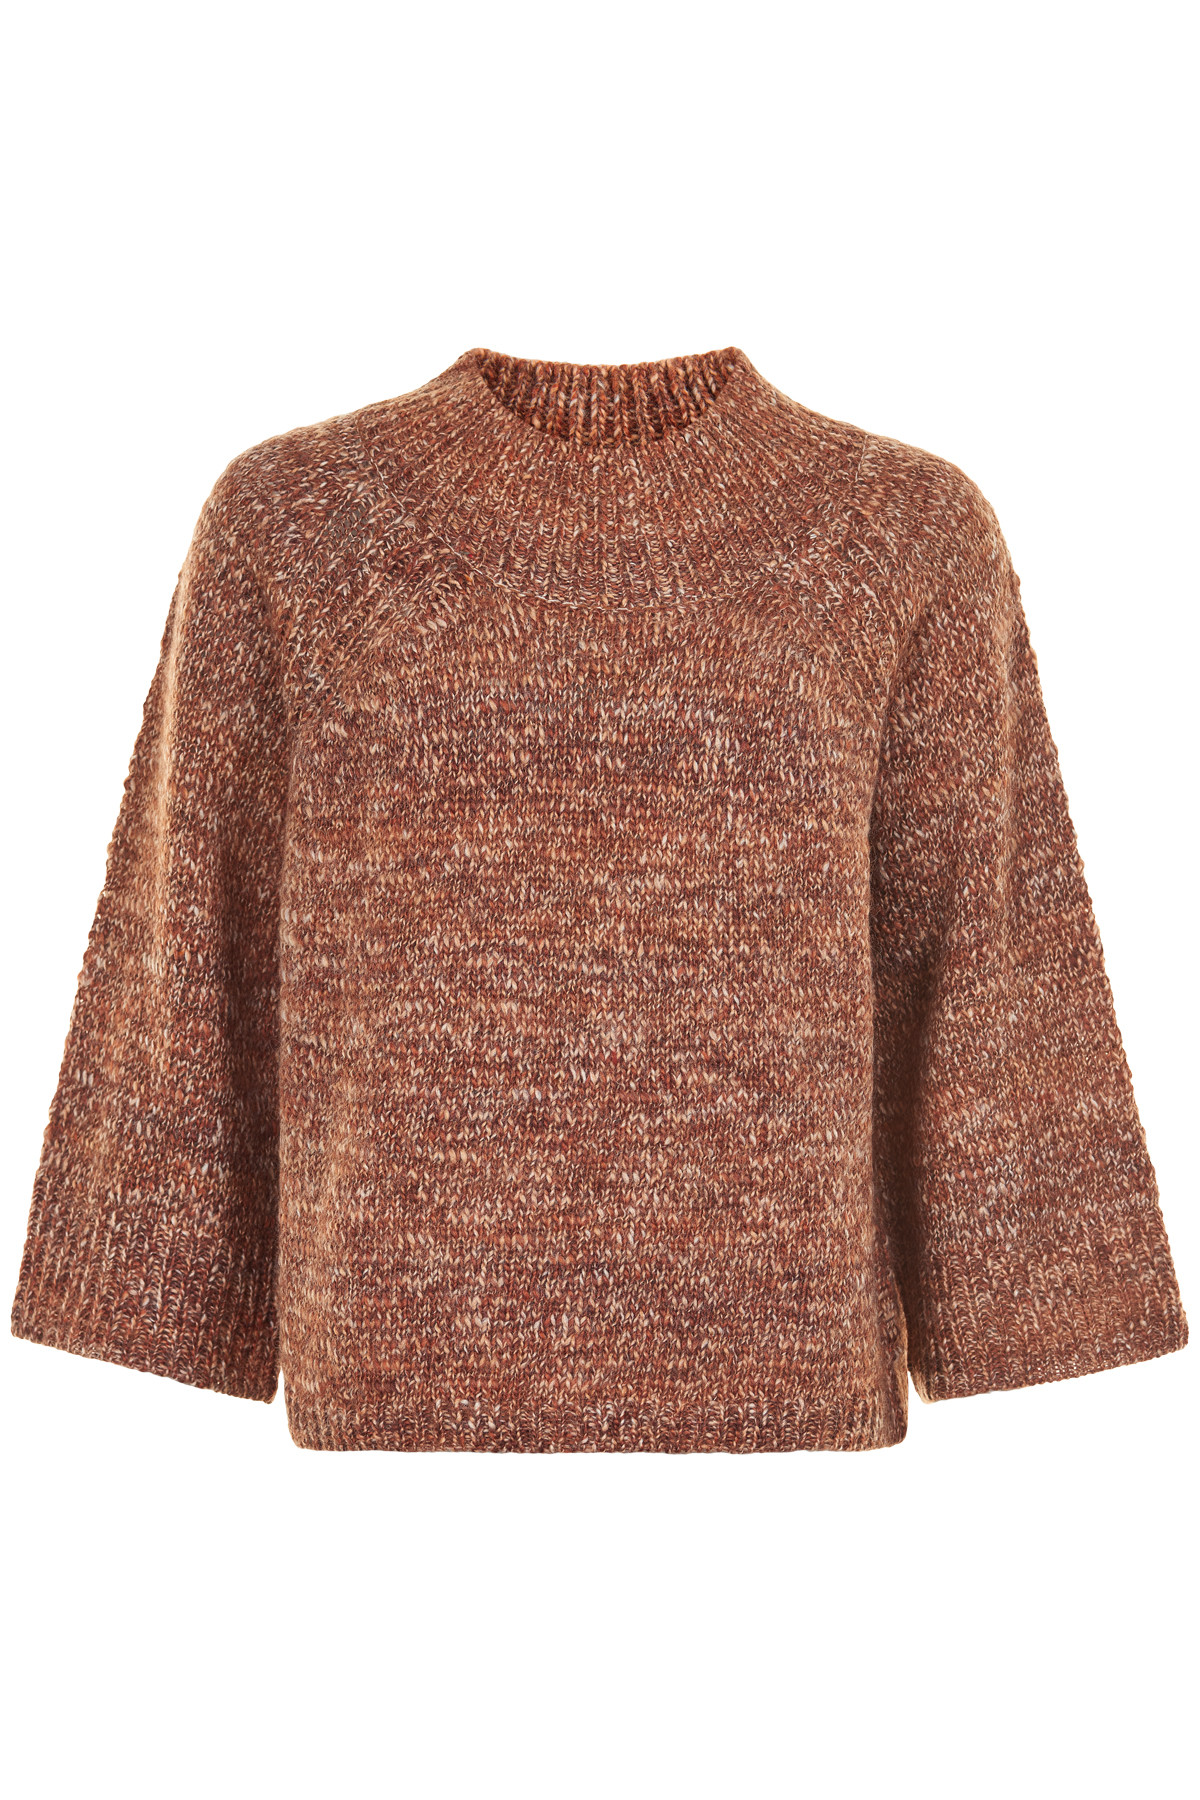 Image of   AND LESS ALHASTI PULLOVER 5519201 (Rawhide, L)